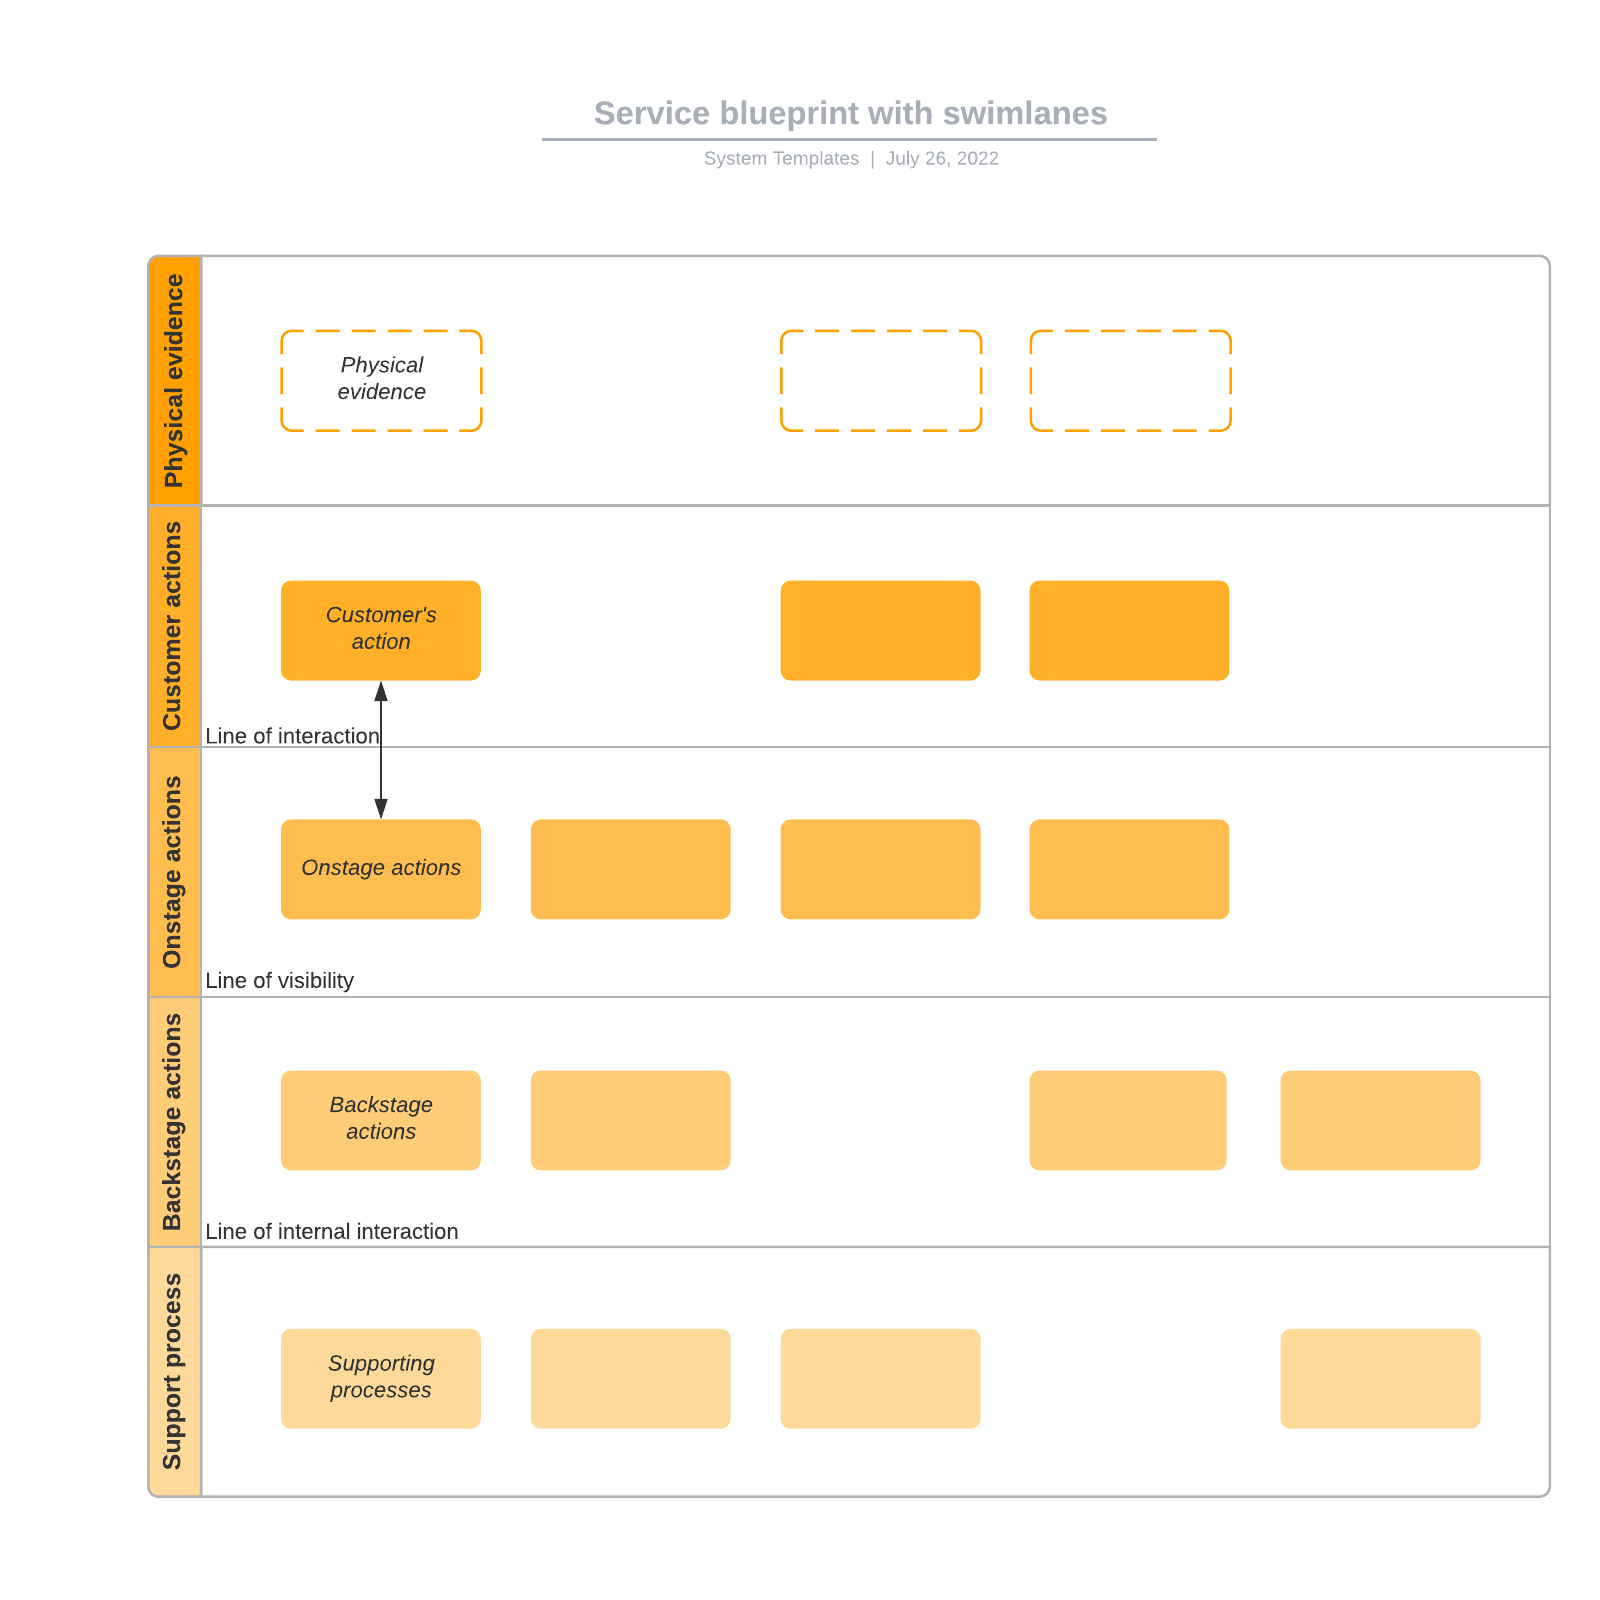 Service blueprint with swimlanes